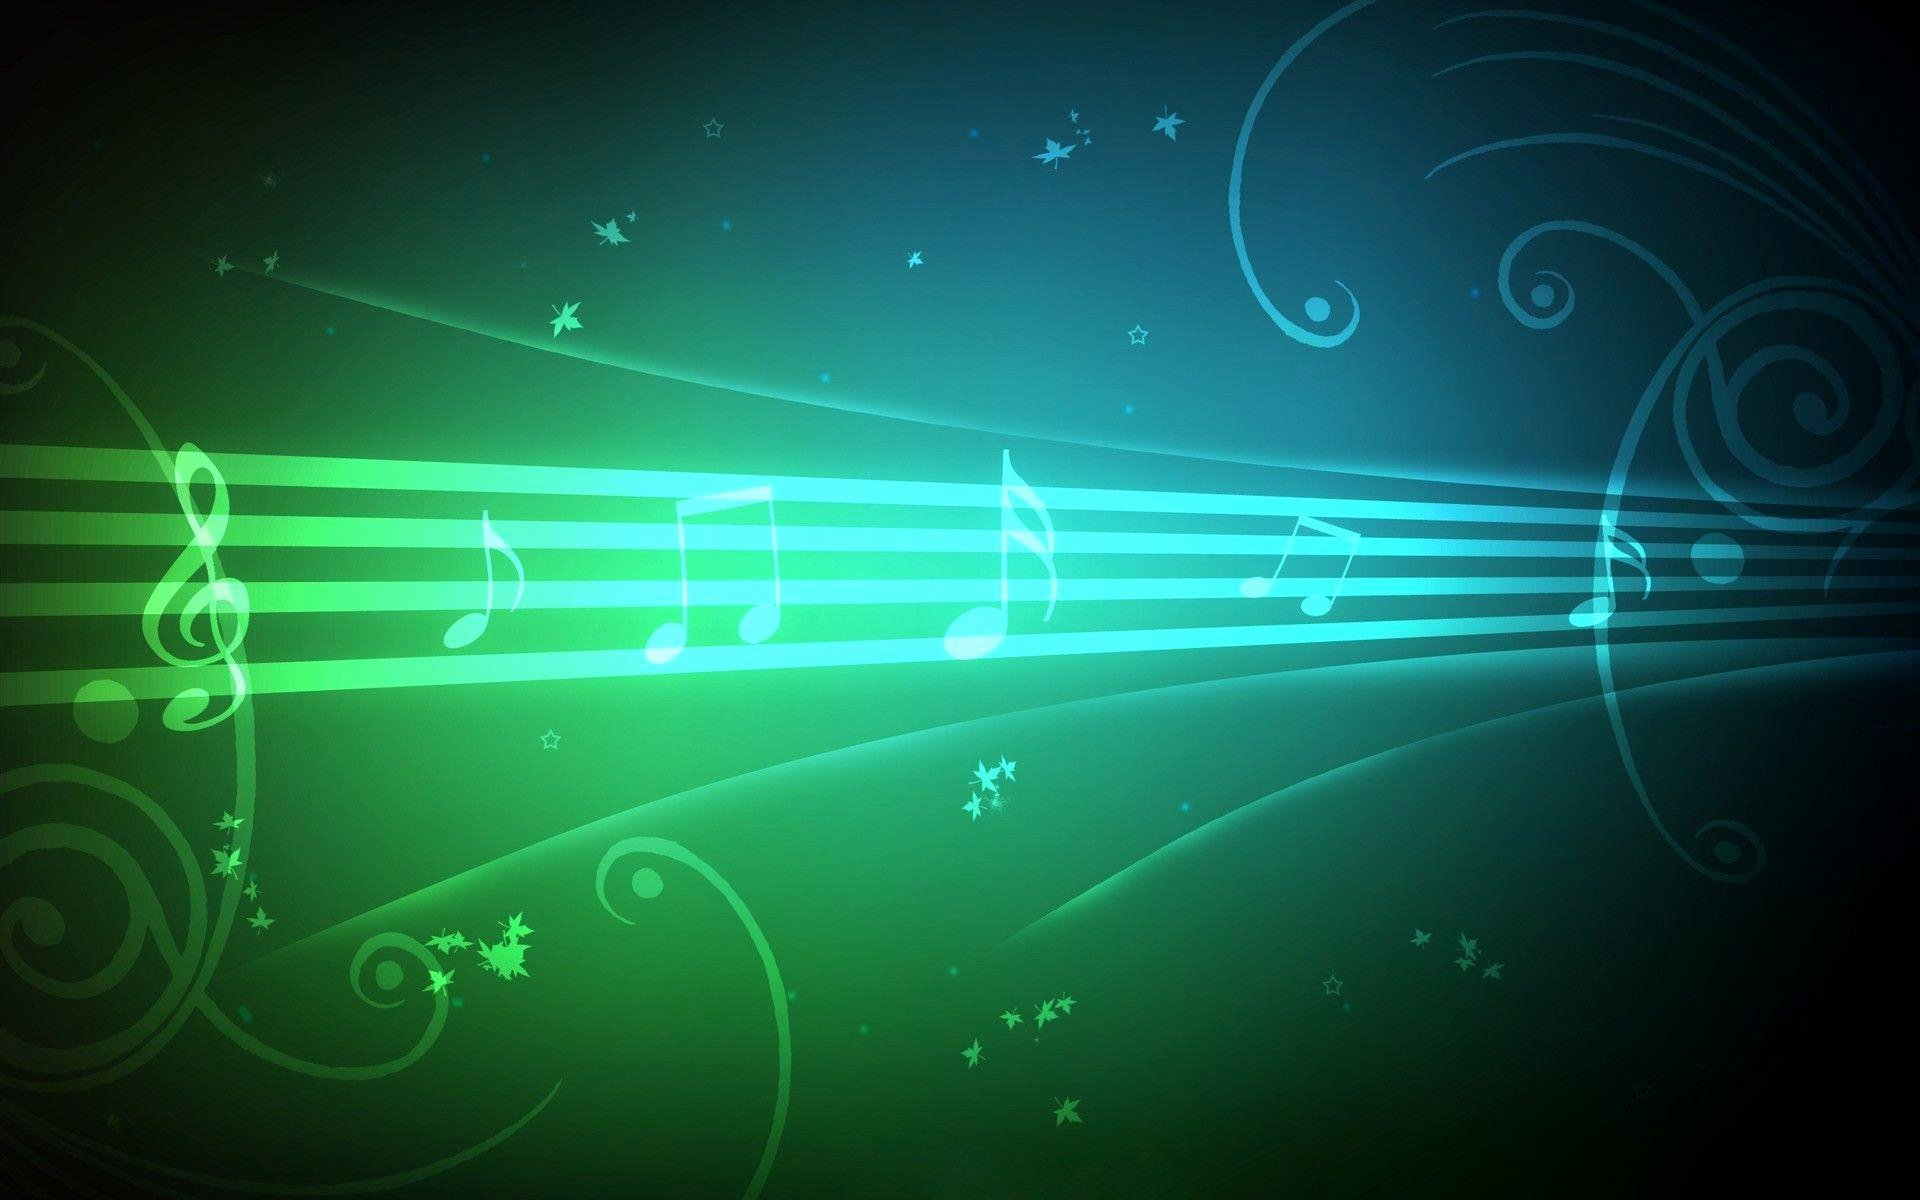 Free Music Background Images Elegant Music Notes Wallpapers Wallpaper Cave